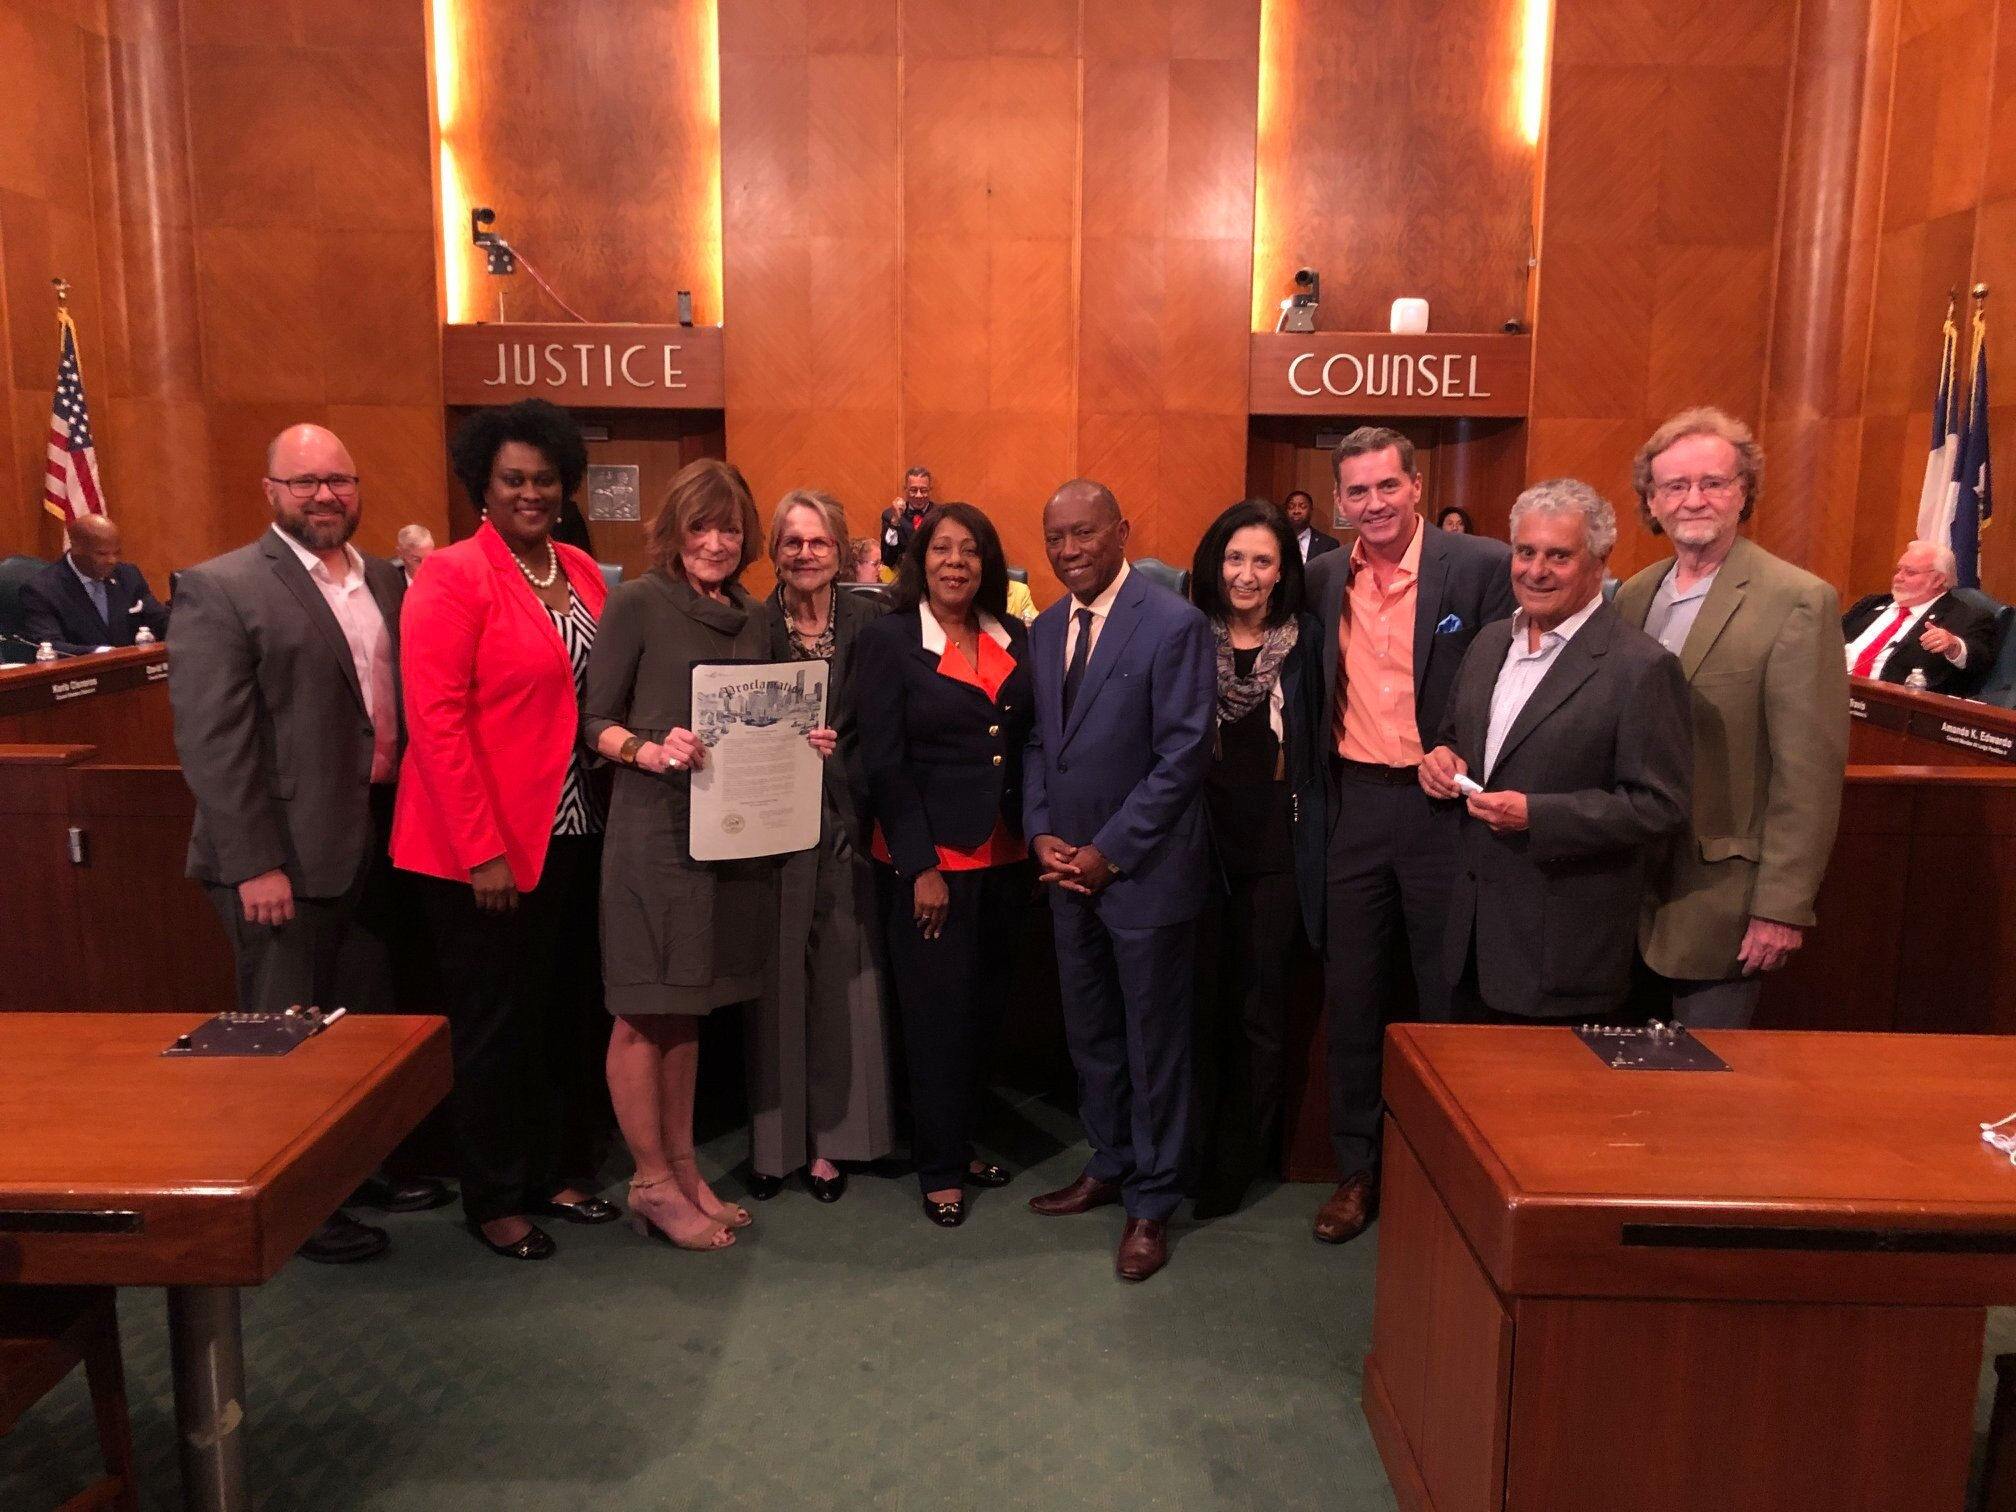 Celebrating 10 Years of Compassion in Action - October 22, 2019 - Compassionate Houston Board members and representatives of partner organizations receive a Proclamation from Mayor Sylvester Turner.